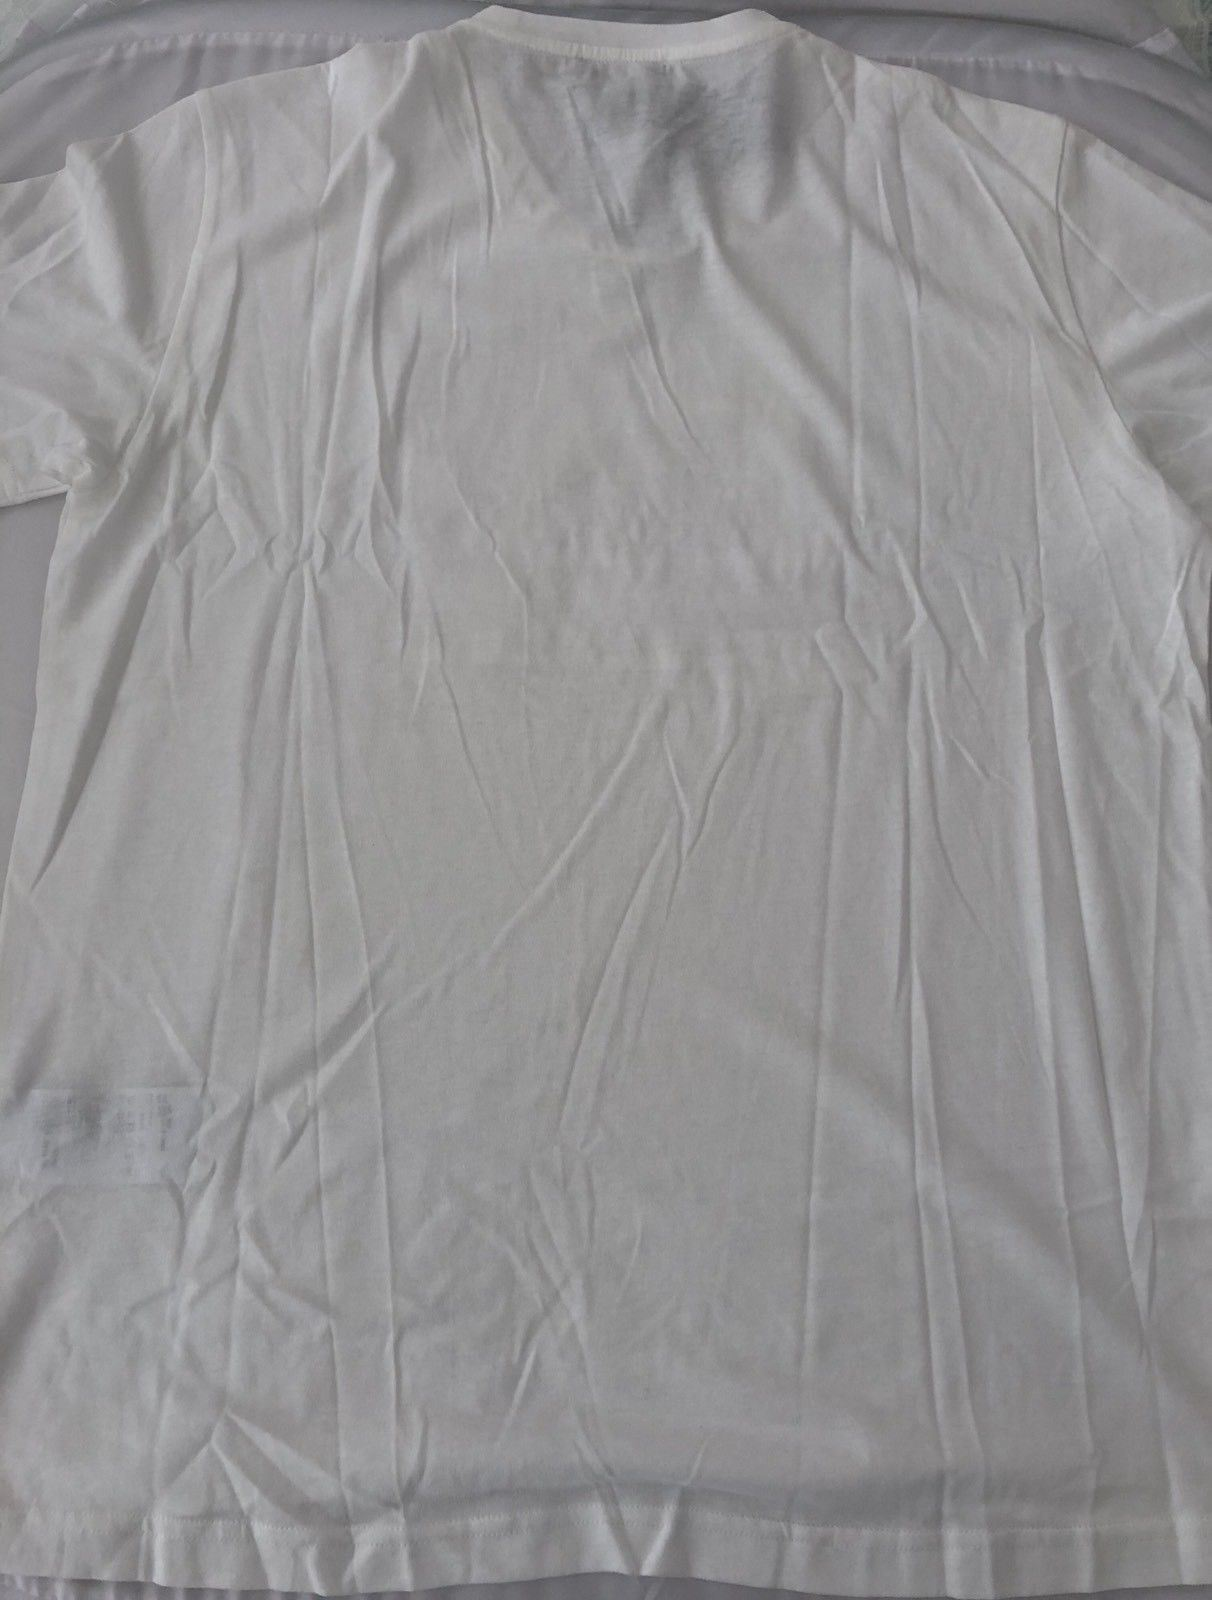 NWT $175 Emporio Armani FA White Short Sleeve T-Shirt 2XL ZPH07 - BAYSUPERSTORE